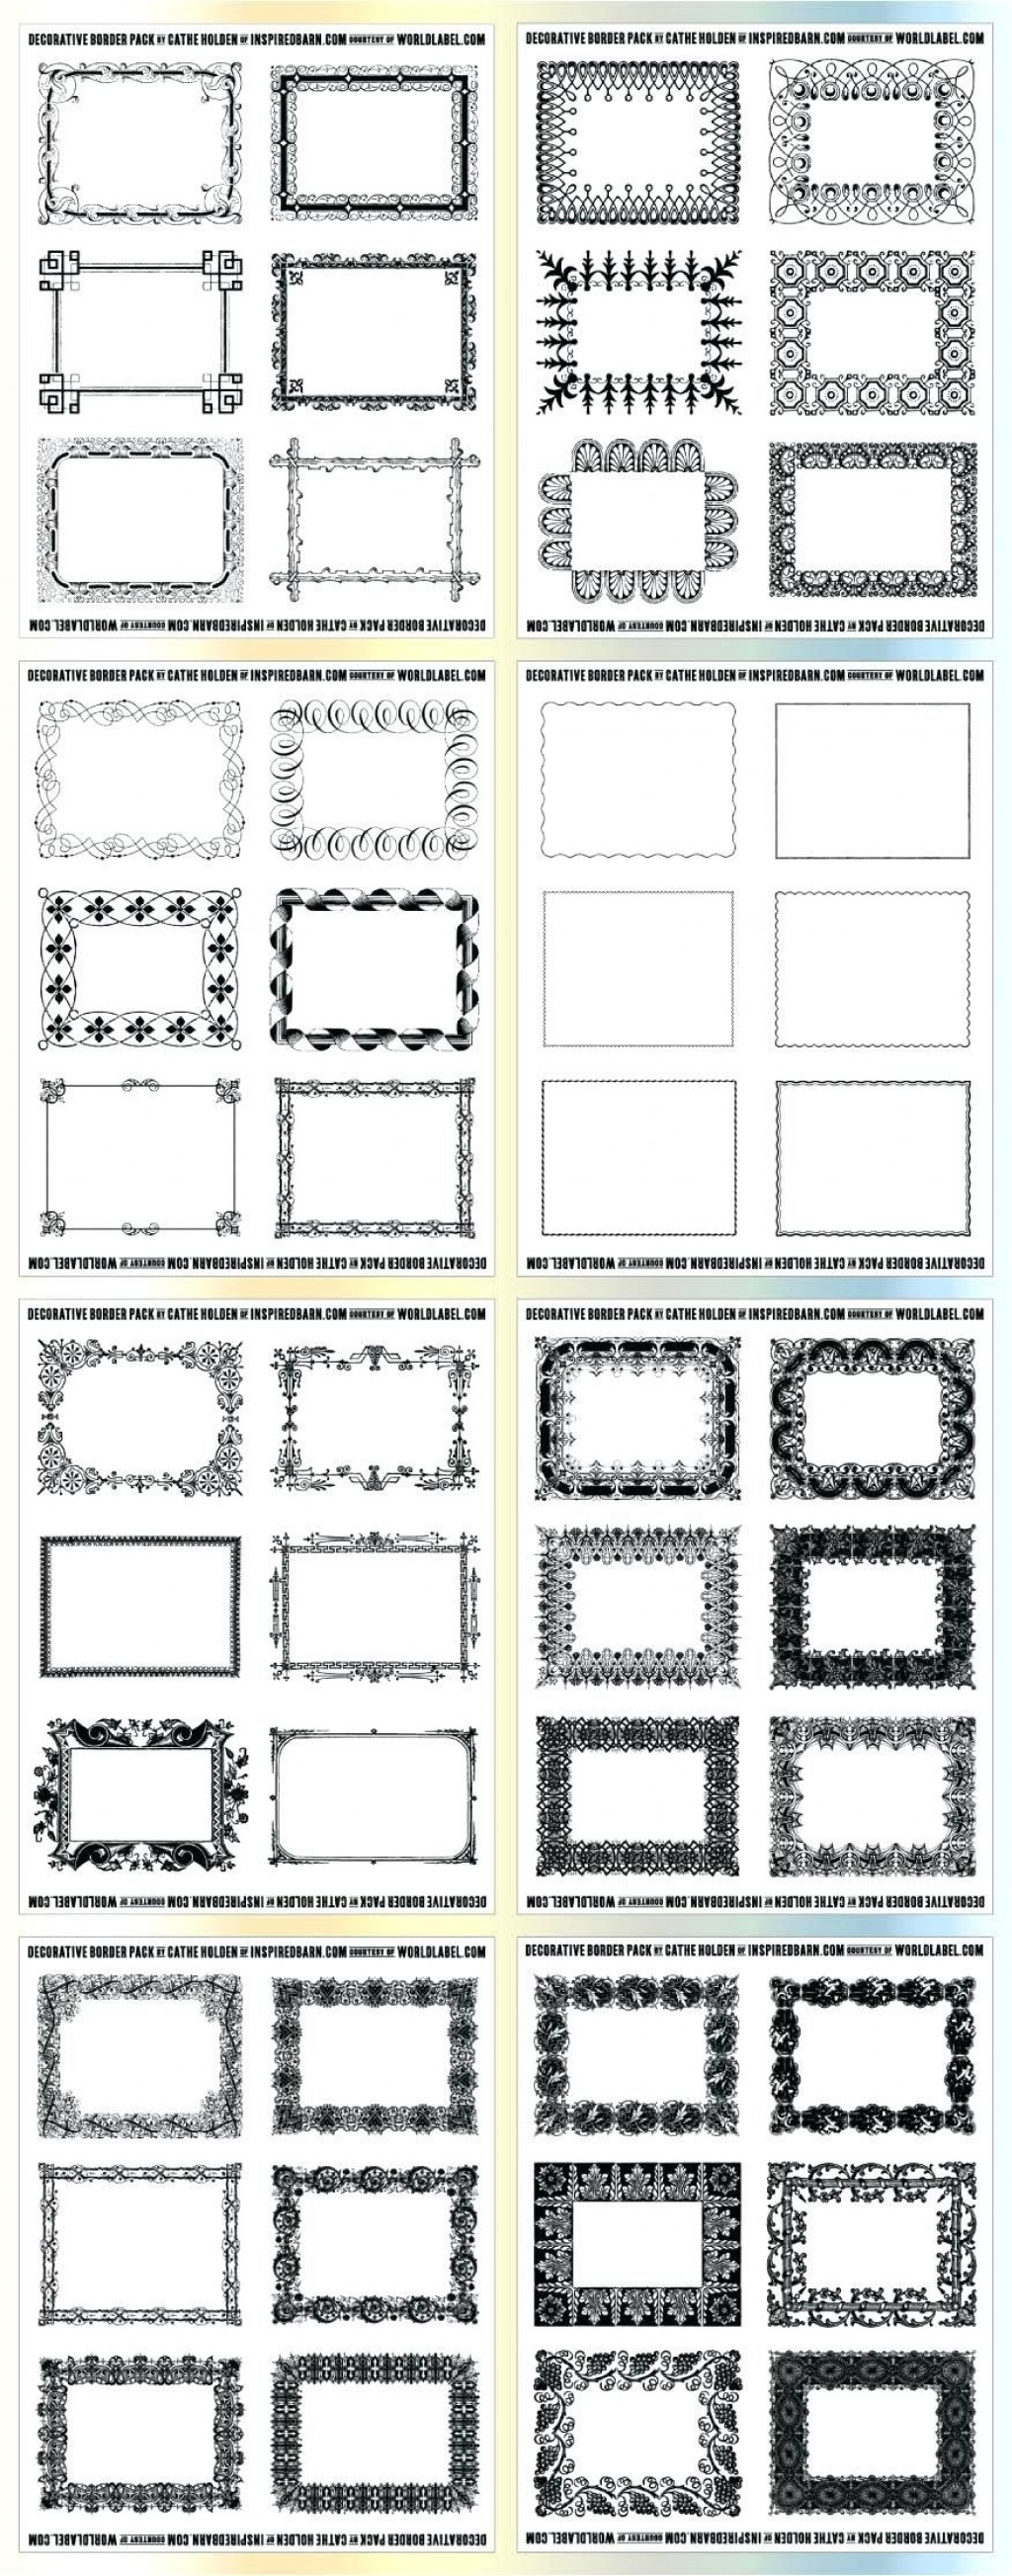 008 Wondrou Free Mail Label Template Example  Printable Addres 1 X 2 5 8 For Word DownloadLarge